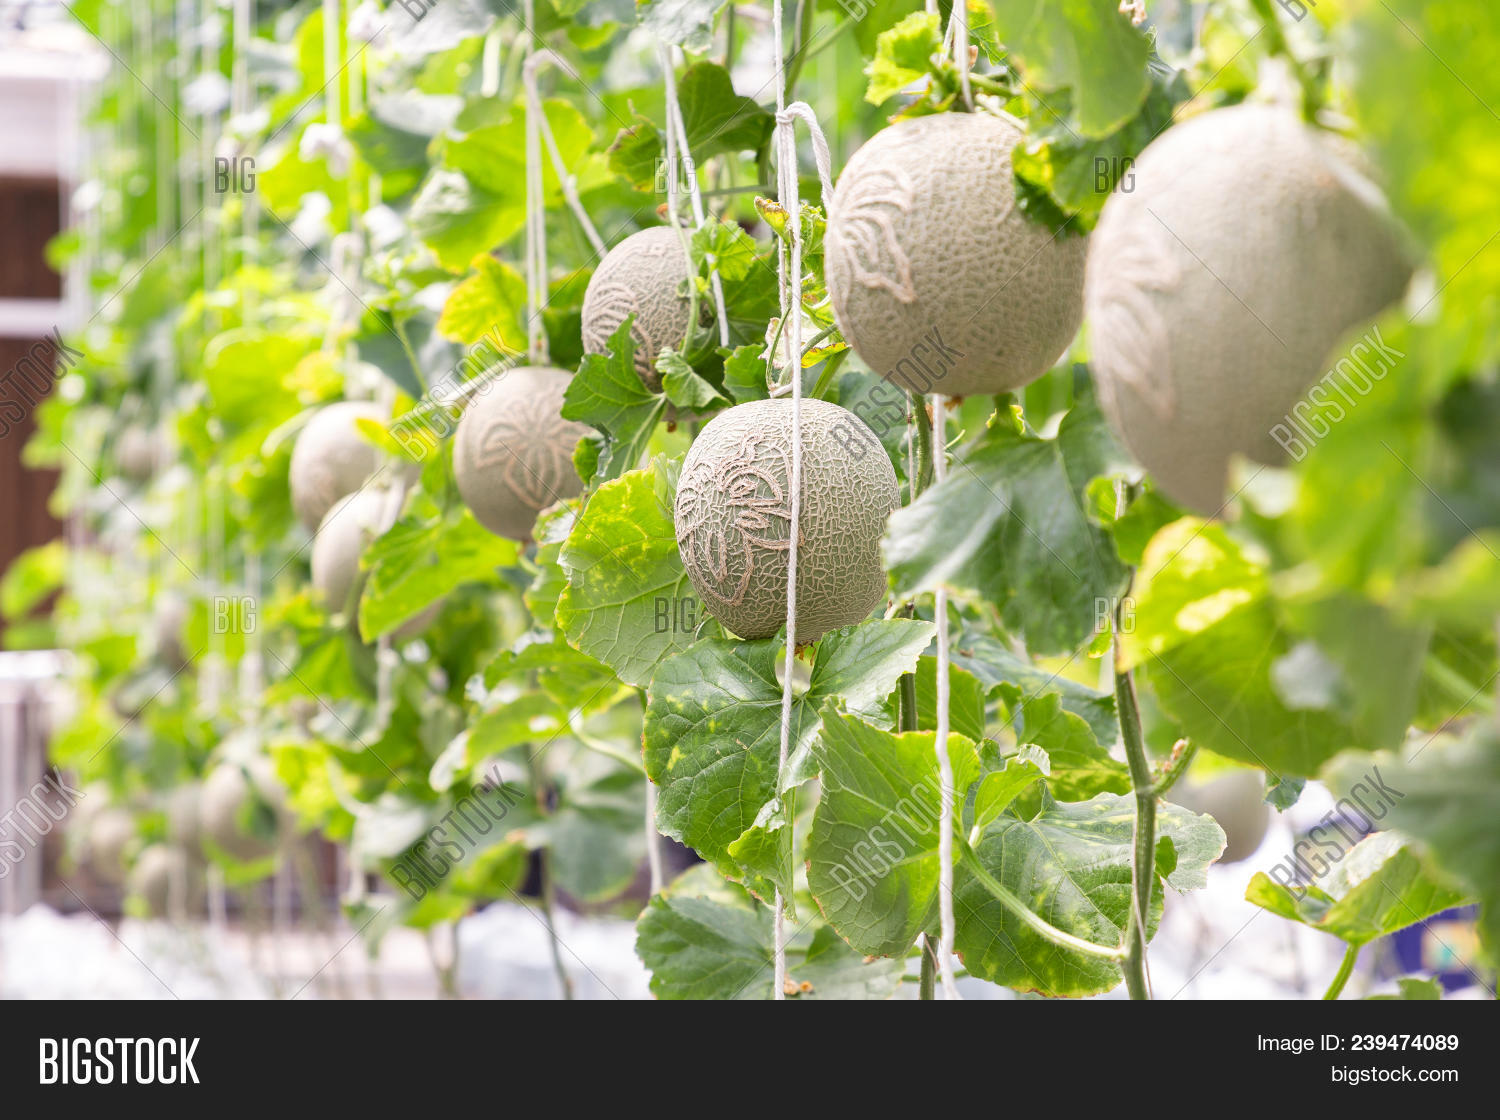 Green Melon Cantaloupe Image Photo Free Trial Bigstock 1 2 3 4 5. green melon cantaloupe image photo